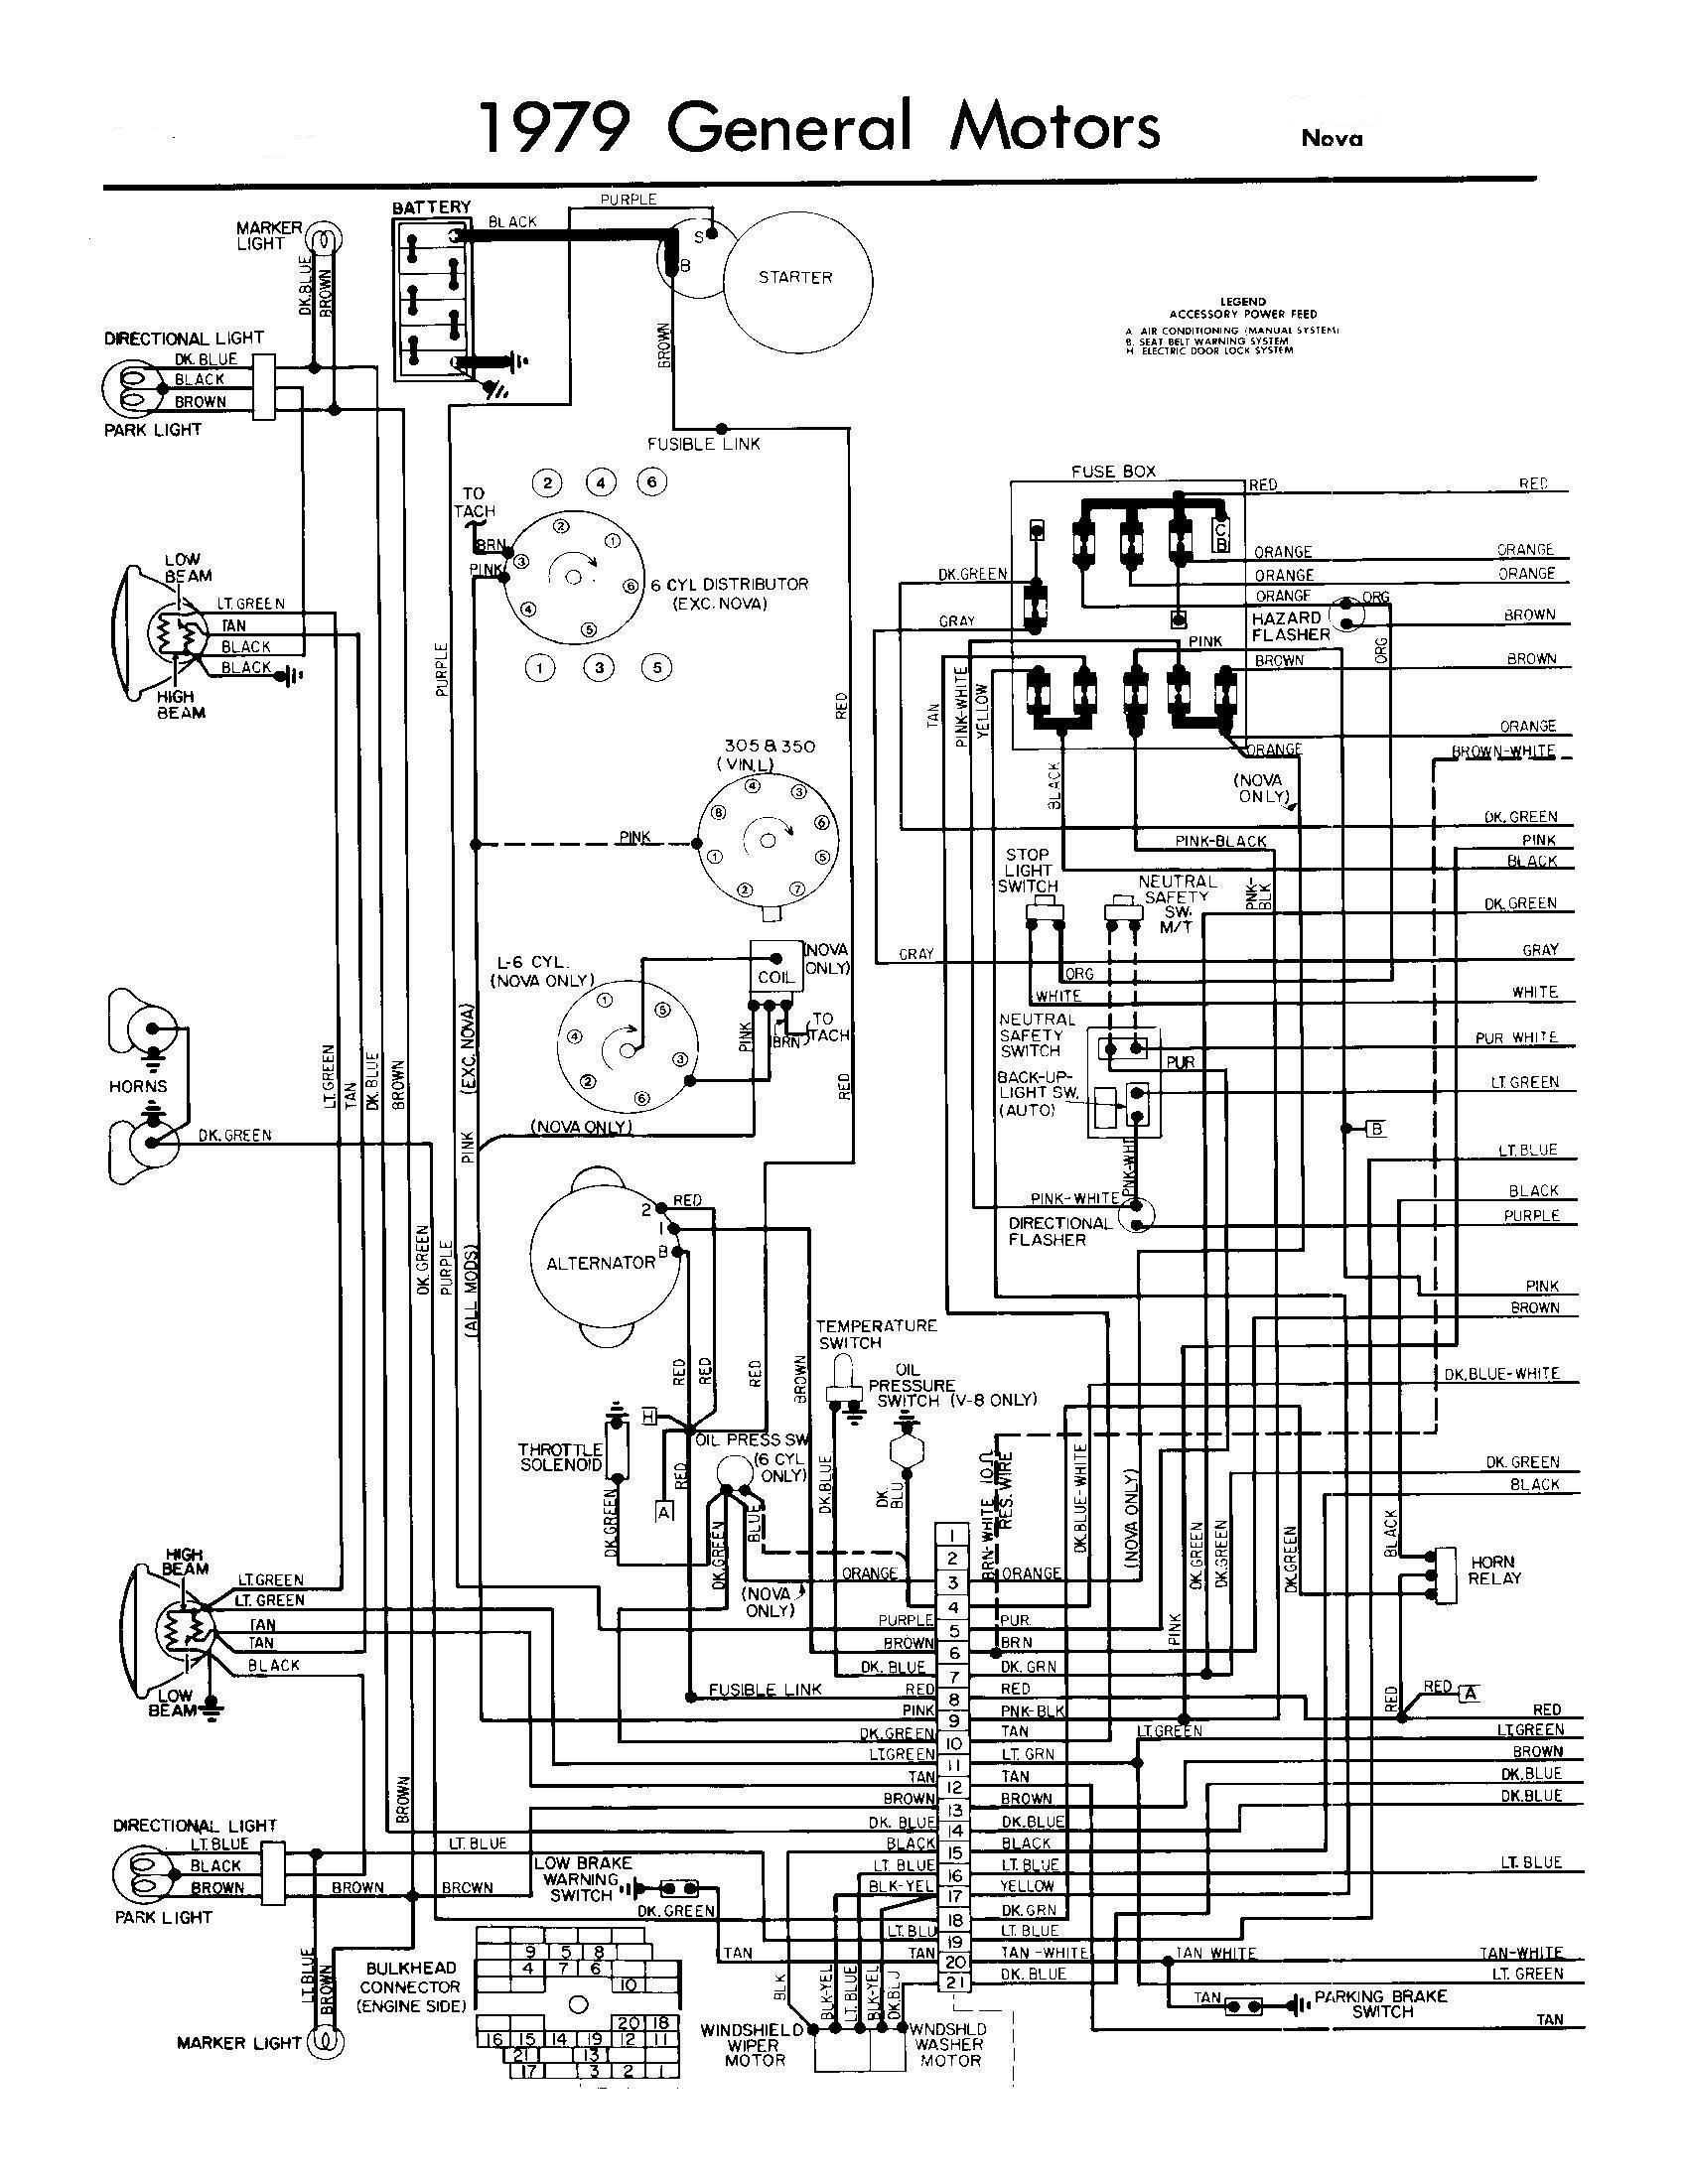 hight resolution of 1979 chevy pickup fuse panel diagram wiring diagram expert 1979 4x4 chevy trucks silverado fuse diagram